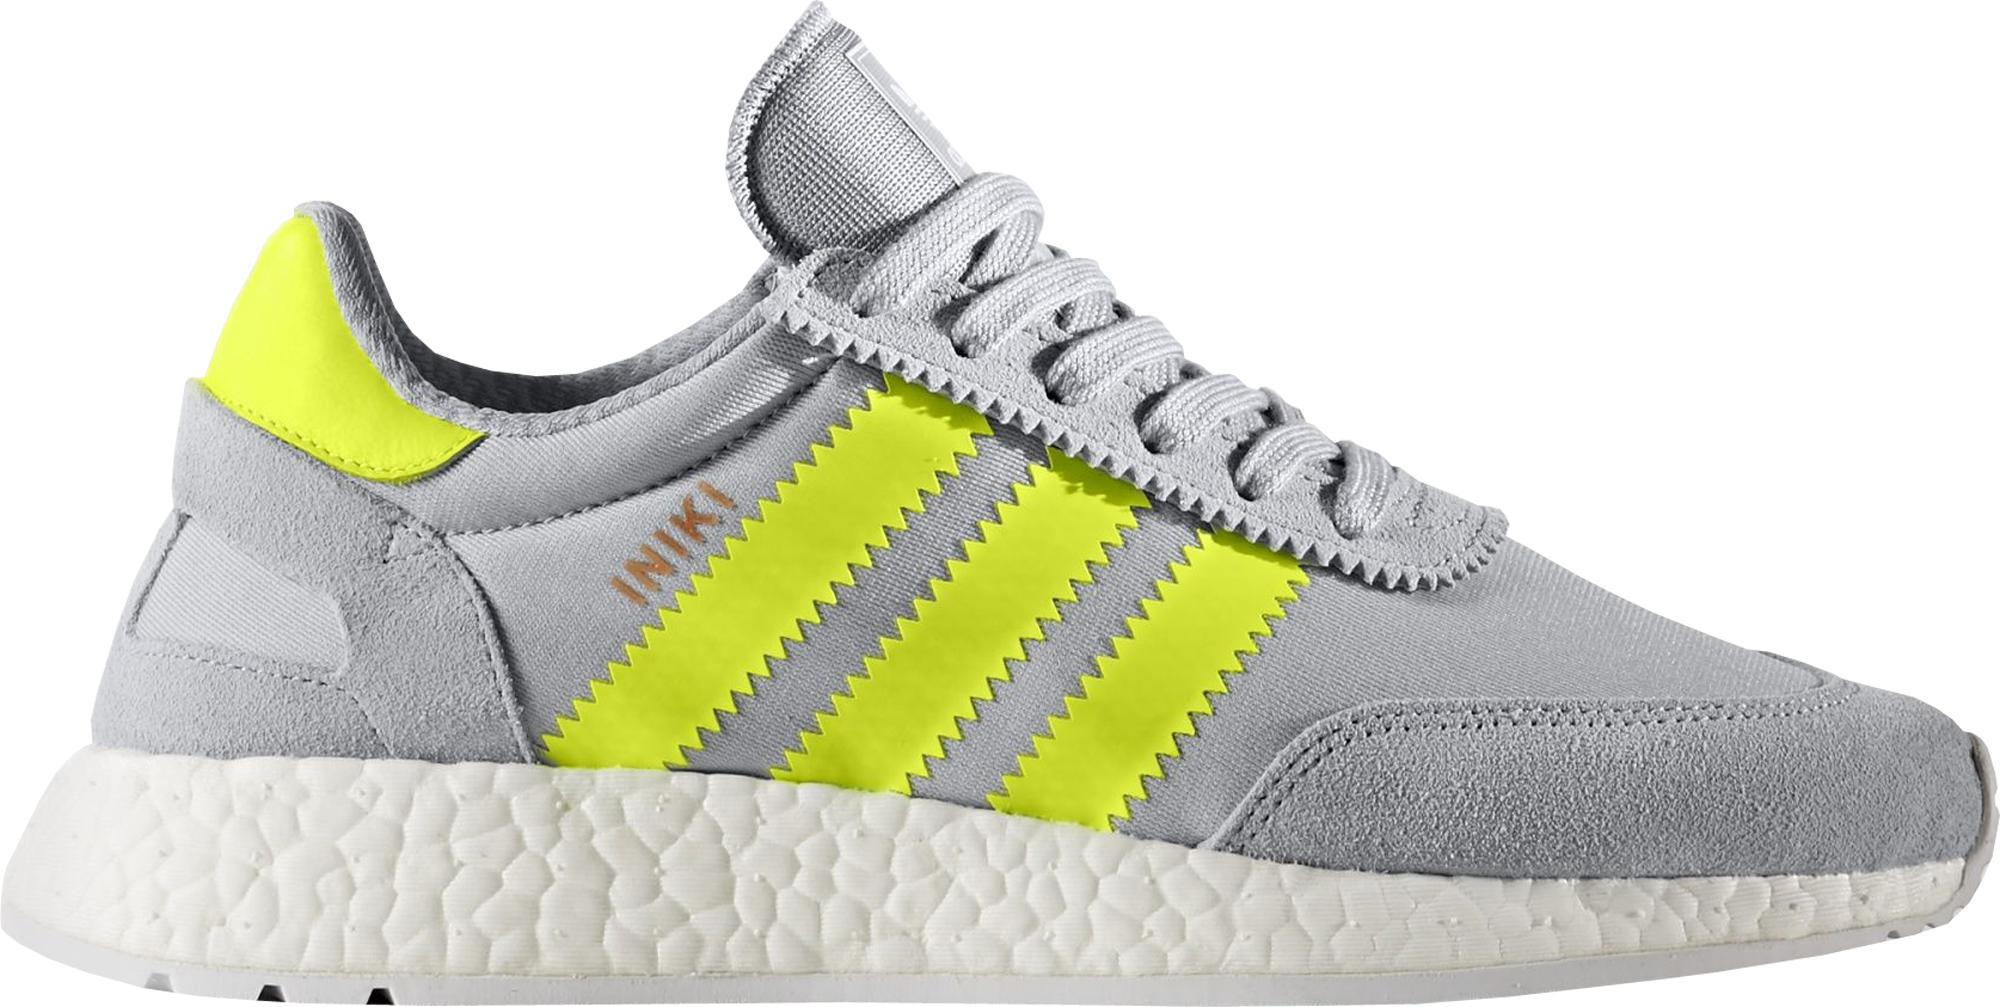 adidas Iniki Runner Clear Onix Solar Yellow (W)